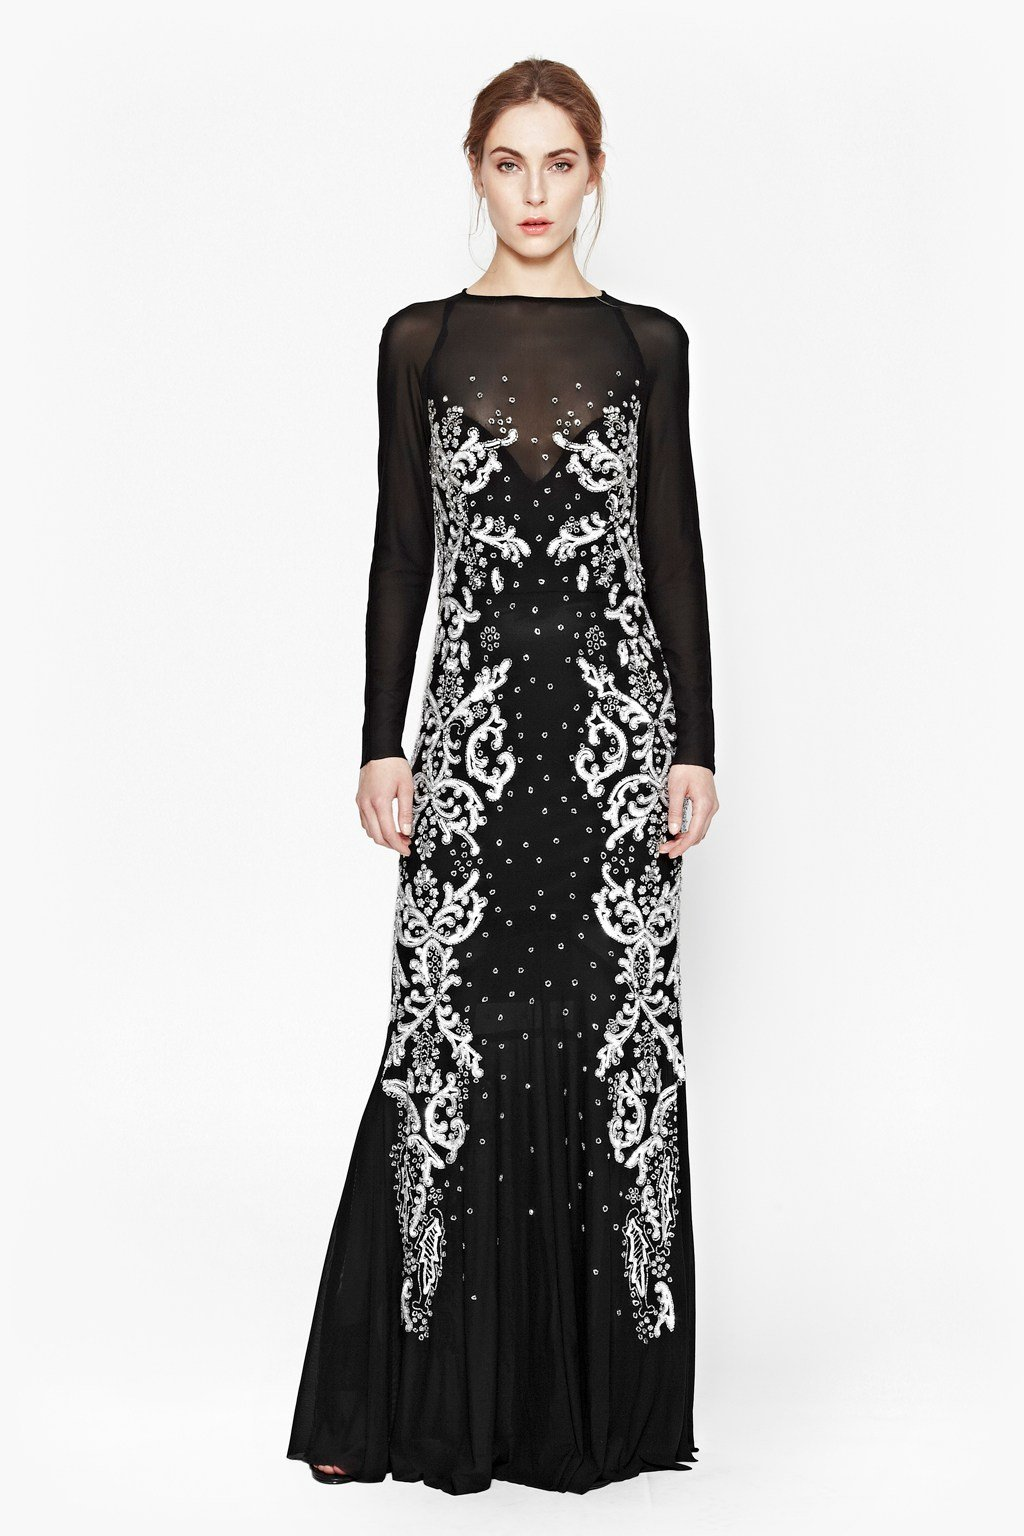 98c27bda062 Sequin Maxi Dress. loading images.